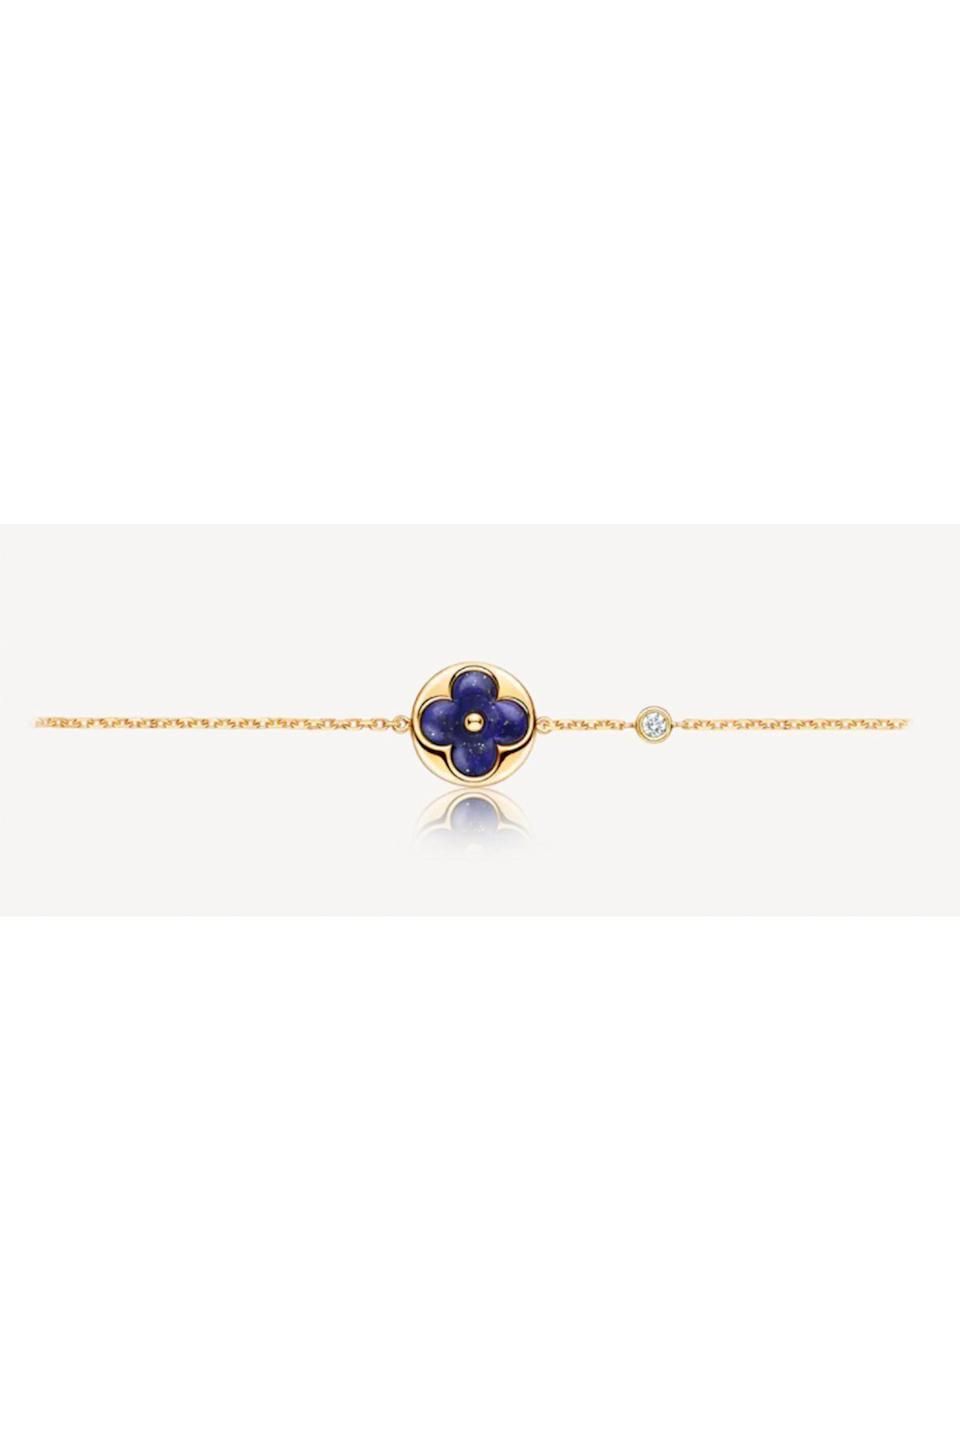 """<p><strong>Louis Vuitton</strong></p><p>us.louisvuitton.com</p><p><strong>$3300.00</strong></p><p><a href=""""https://us.louisvuitton.com/eng-us/products/color-blossom-bb-sun-bracelet-yellow-gold-lapis-lazuli-and-diamond-nvprod280009v"""" rel=""""nofollow noopener"""" target=""""_blank"""" data-ylk=""""slk:Shop Now"""" class=""""link rapid-noclick-resp"""">Shop Now</a></p><p>This Louis Vuitton blossom bracelet is guaranteed to make you smile every time you catch a glimpse of it.</p>"""